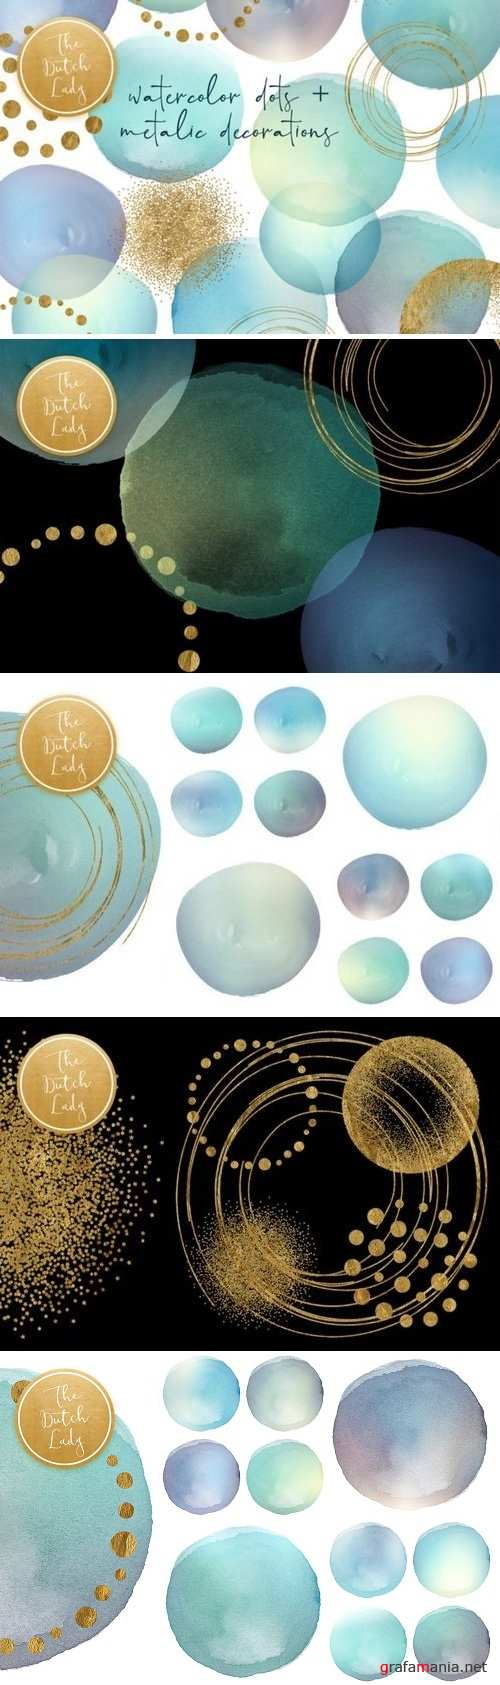 Watercolor Dot & Metallic Decoration 3363605